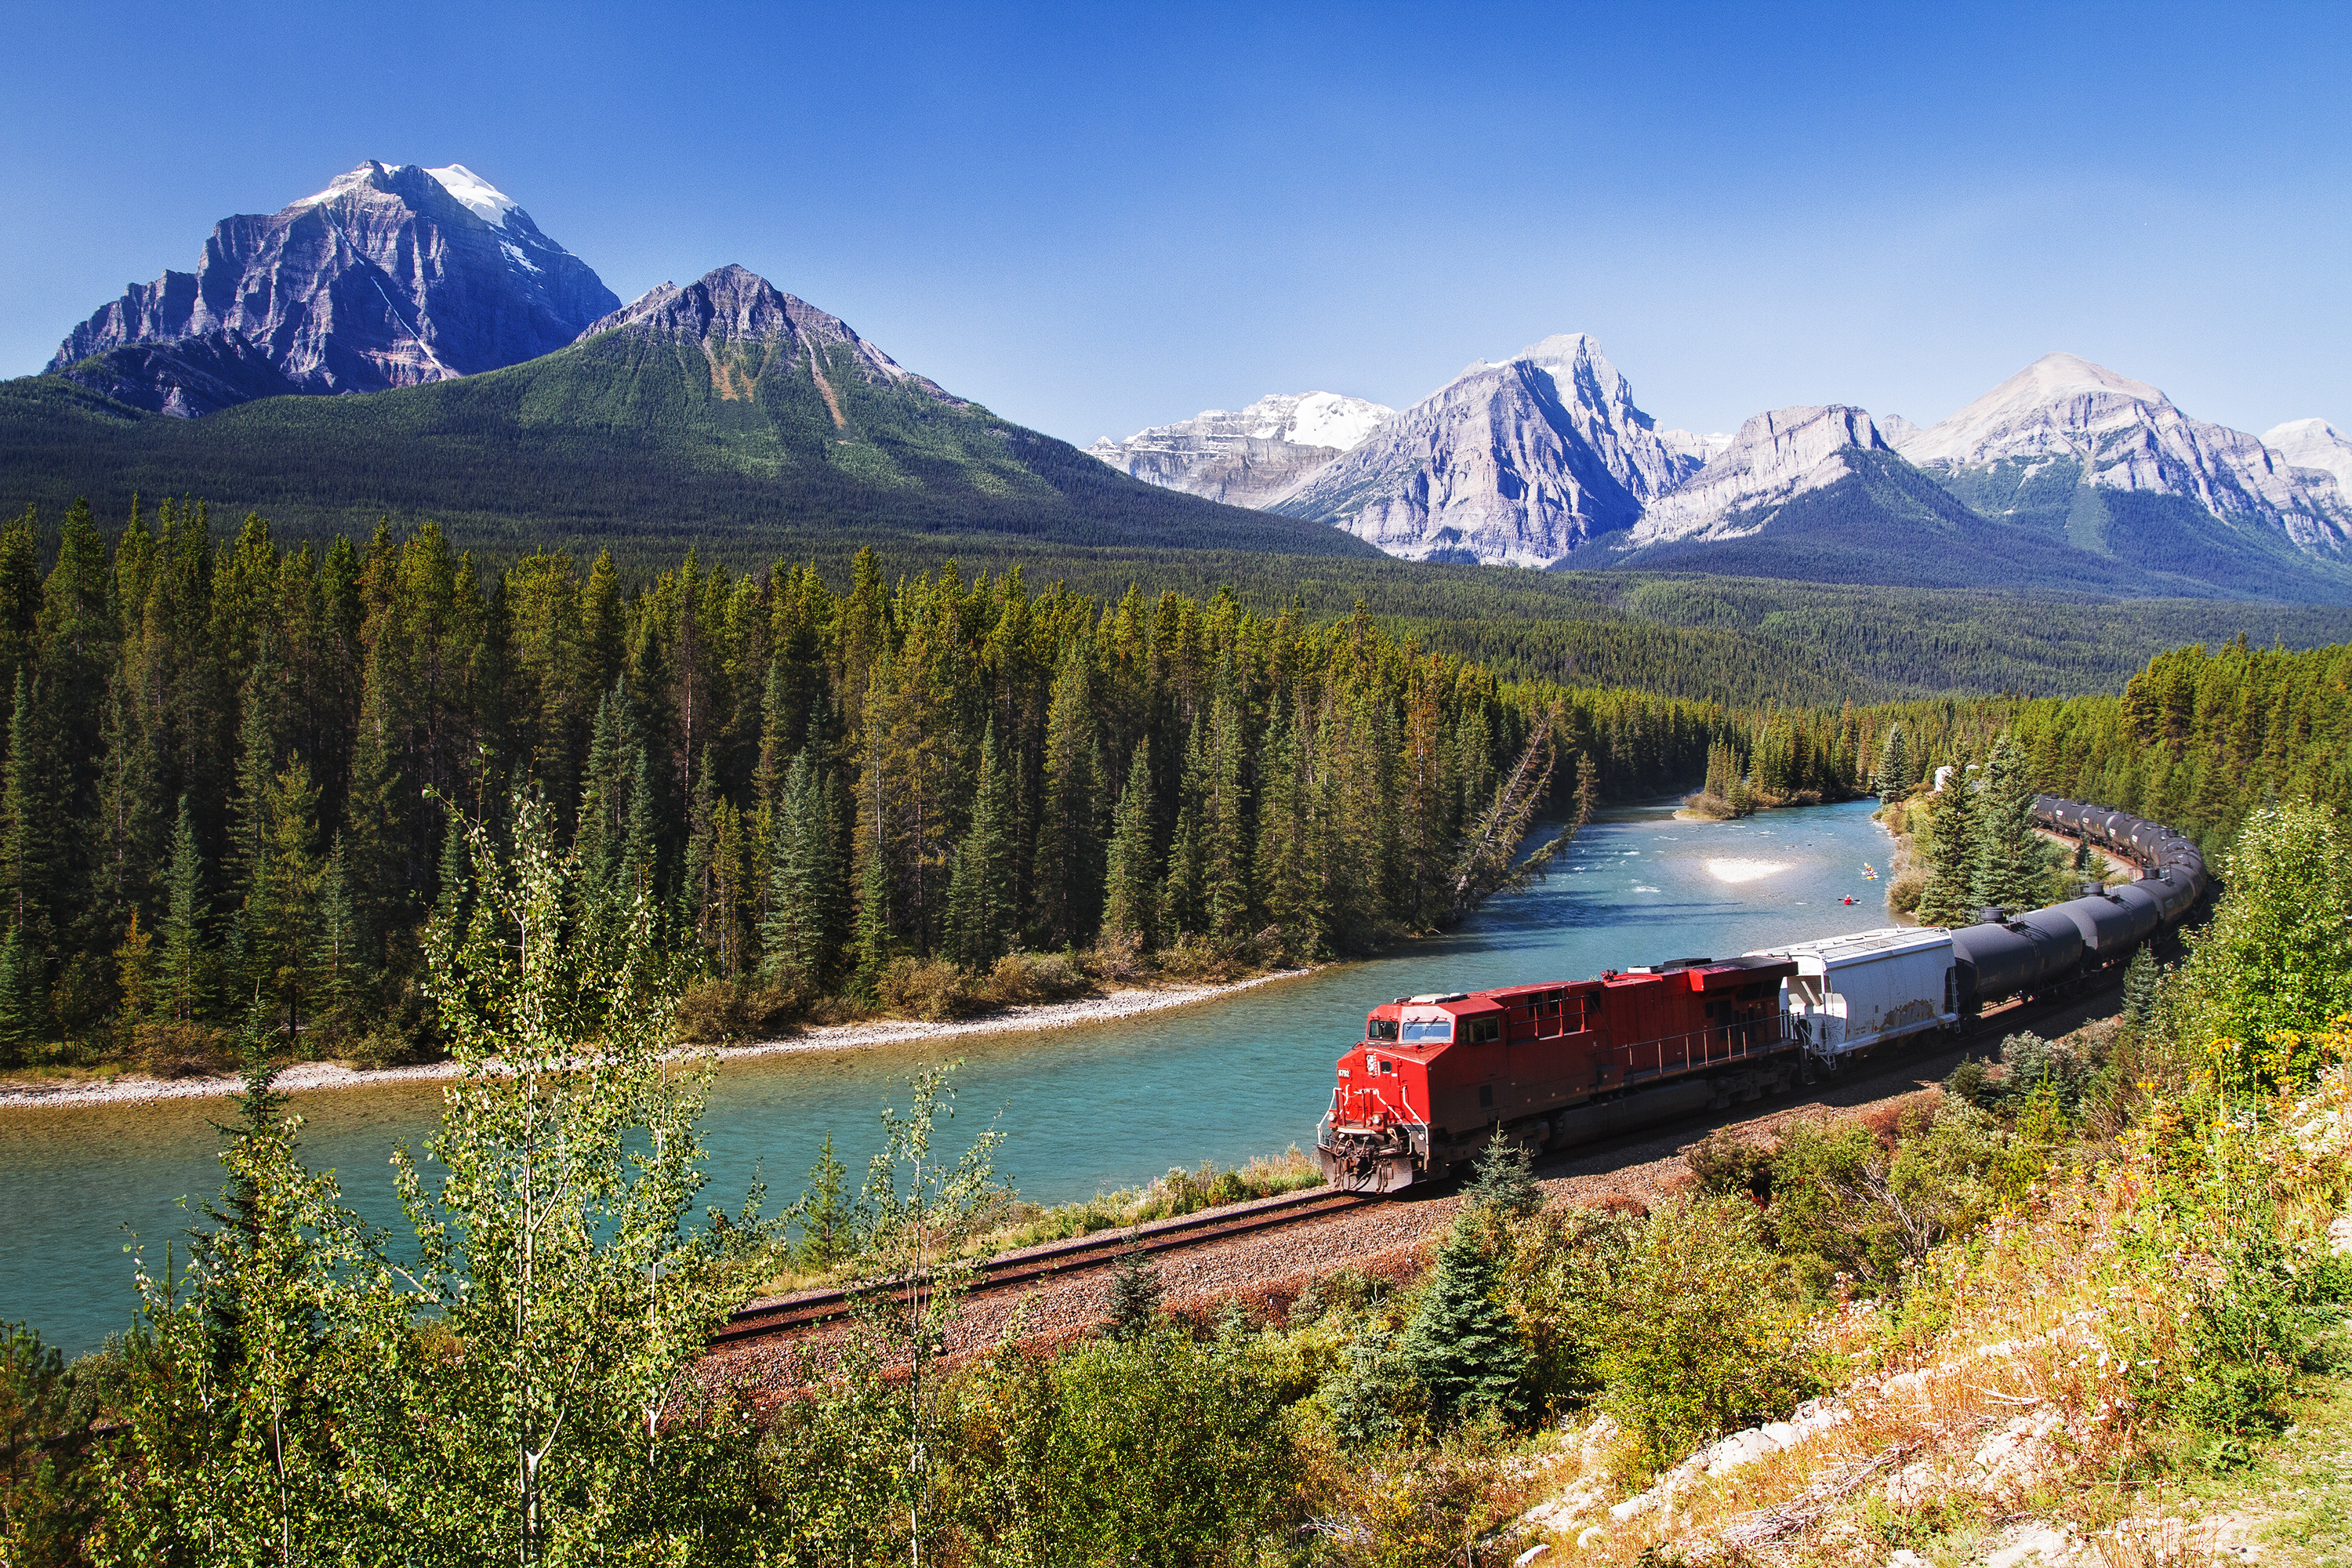 You'll soon be able to take a beautiful glass-domed train ride through the Rocky Mountains